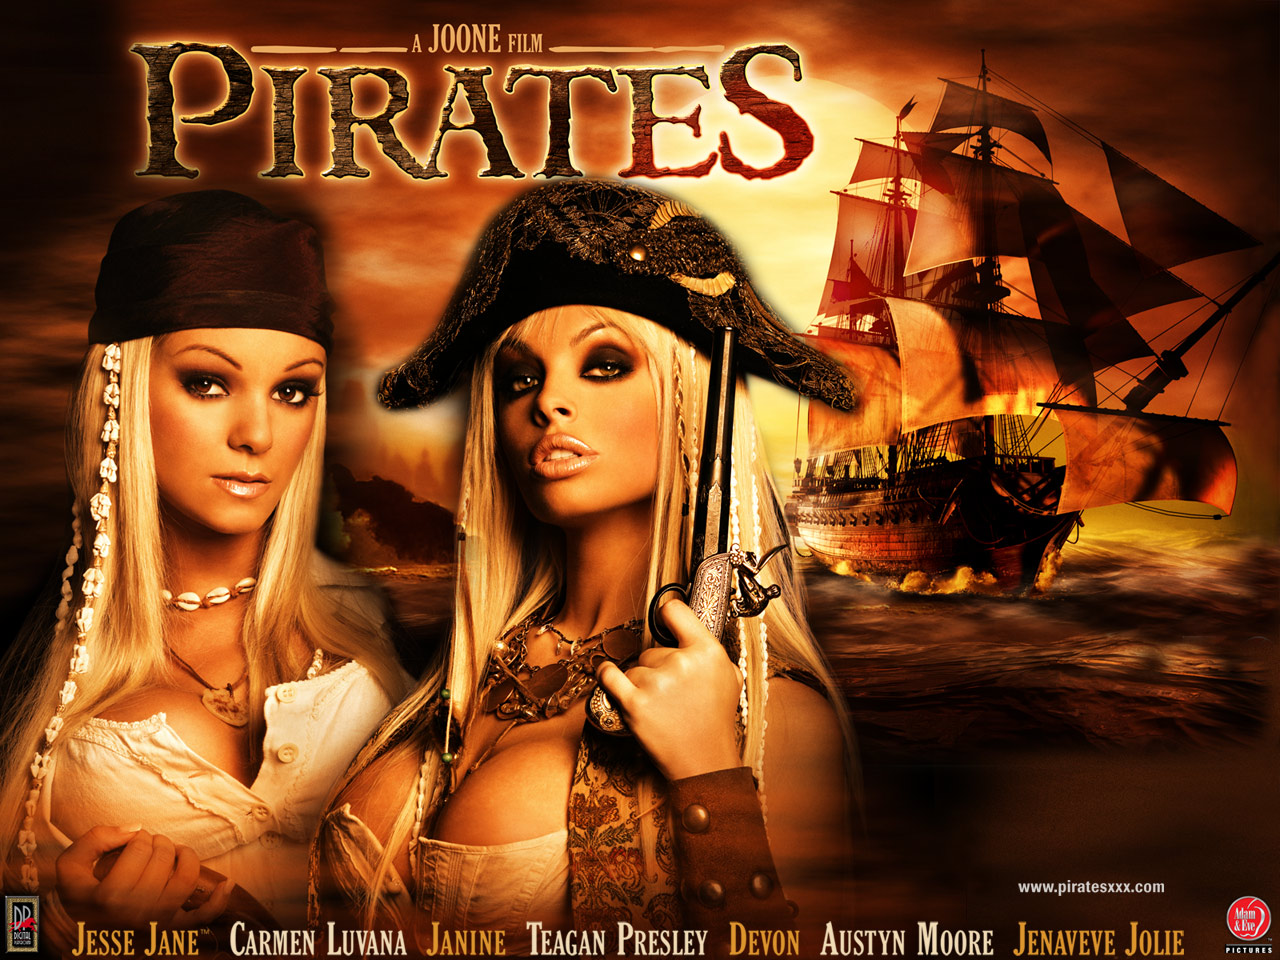 Pirates movie hentai pornos movies